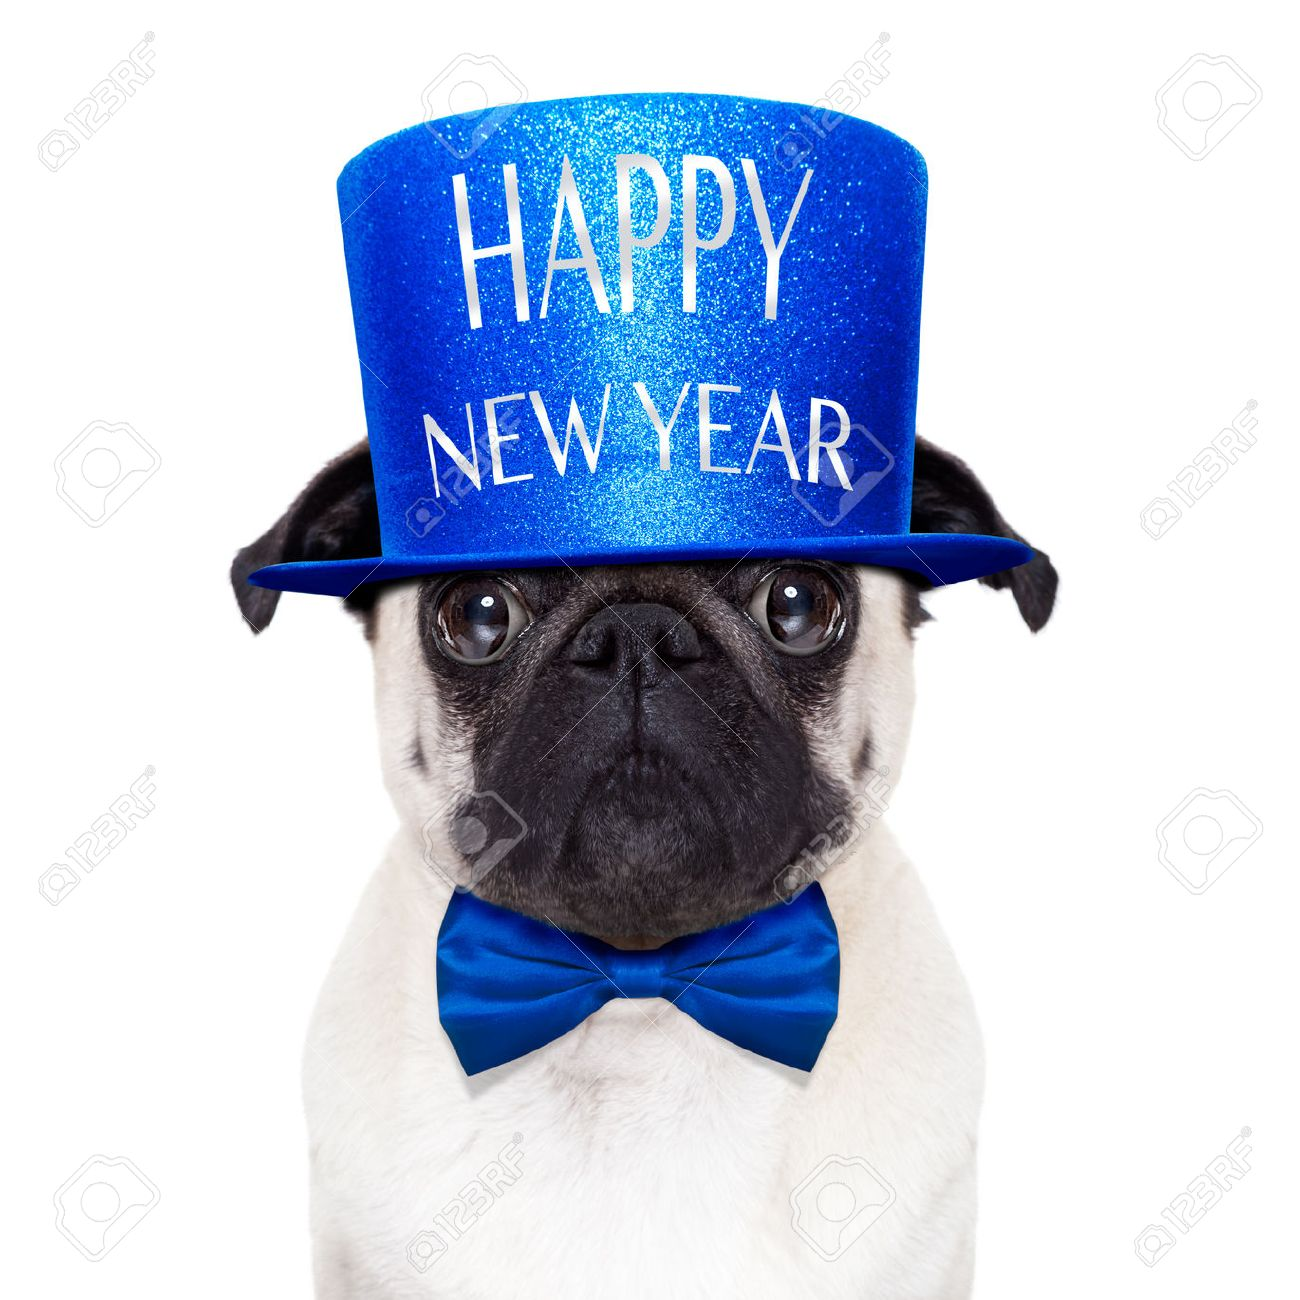 pug dog toasting for new years eve with happy new year hat isolated on white